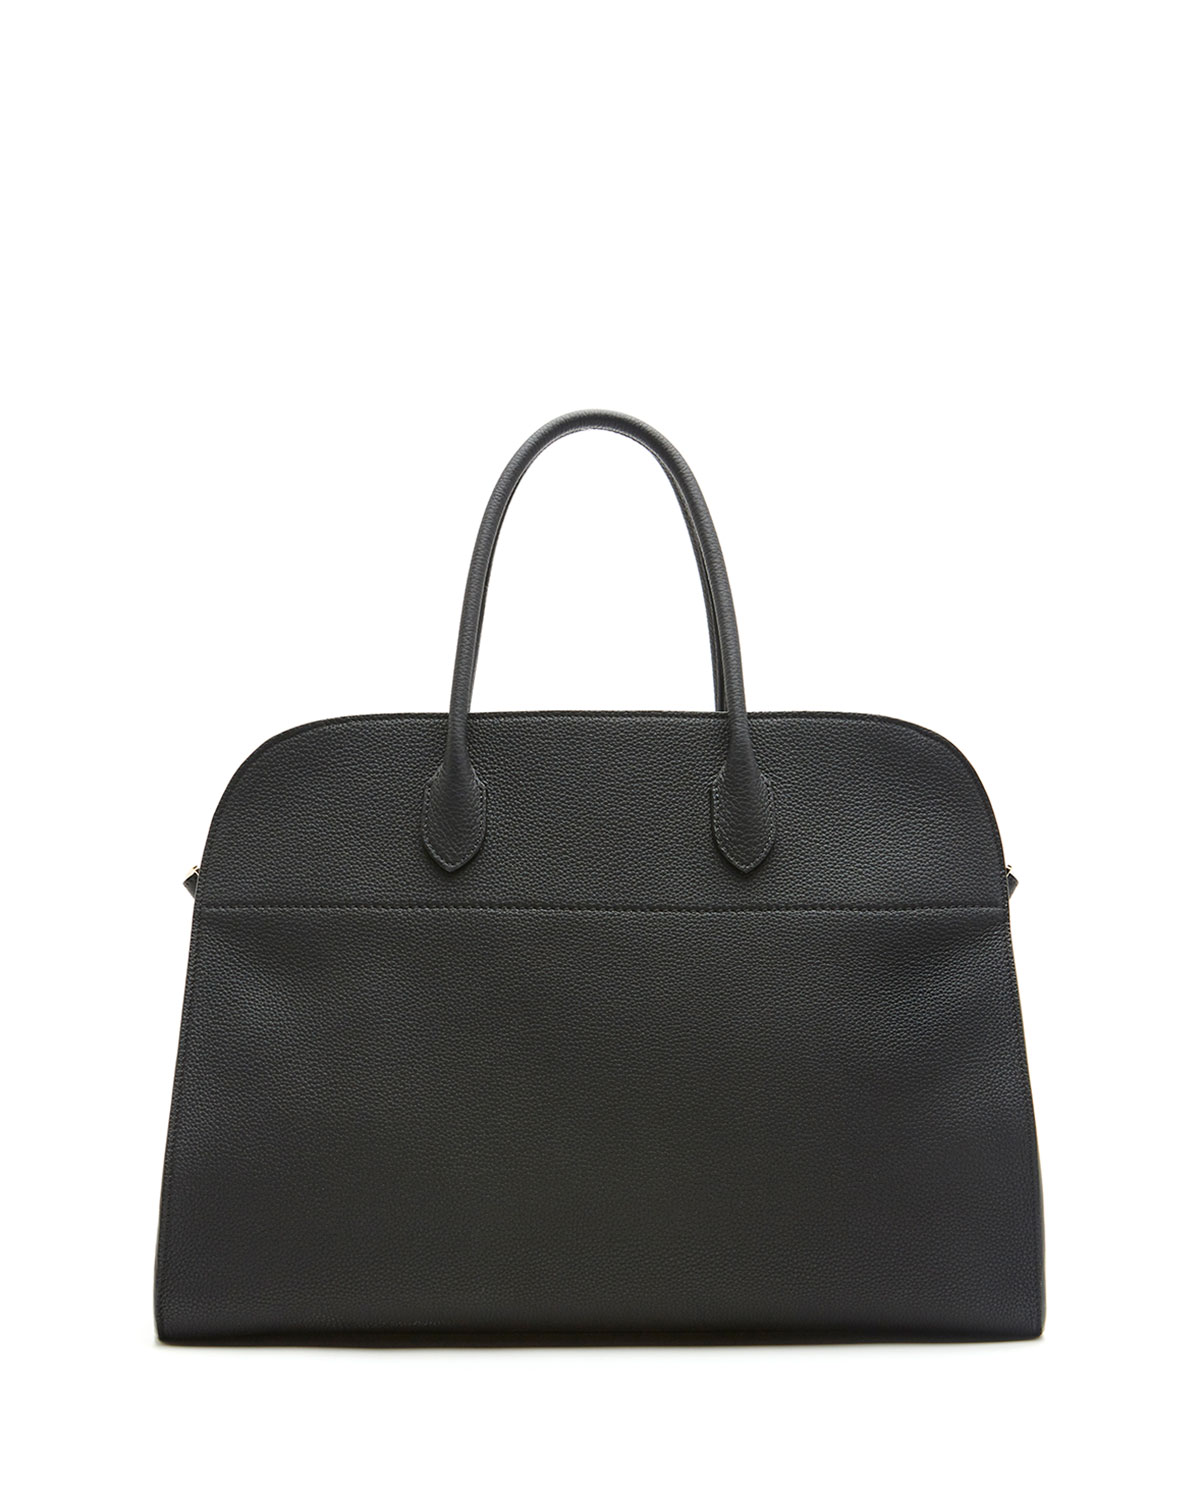 Margaux 17 Calfskin Top Handle Bag